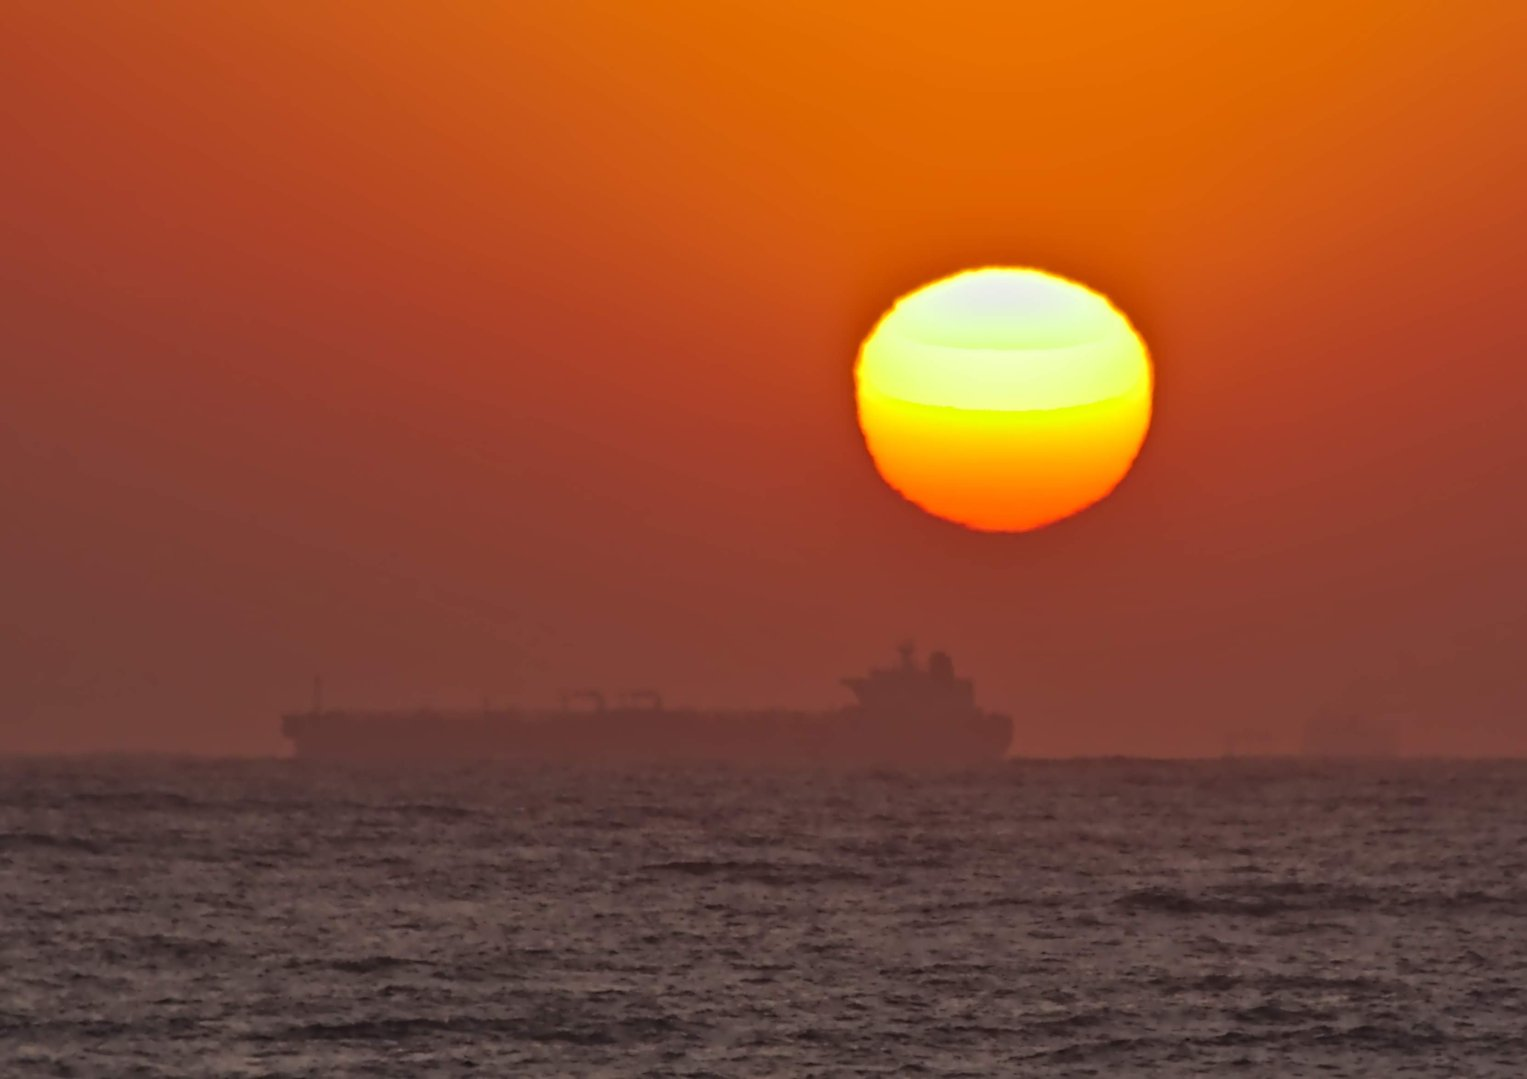 Sunrise over the Indian Ocean at Umdloti, near Durban in Kwa Zulu-Natal in South Africa.